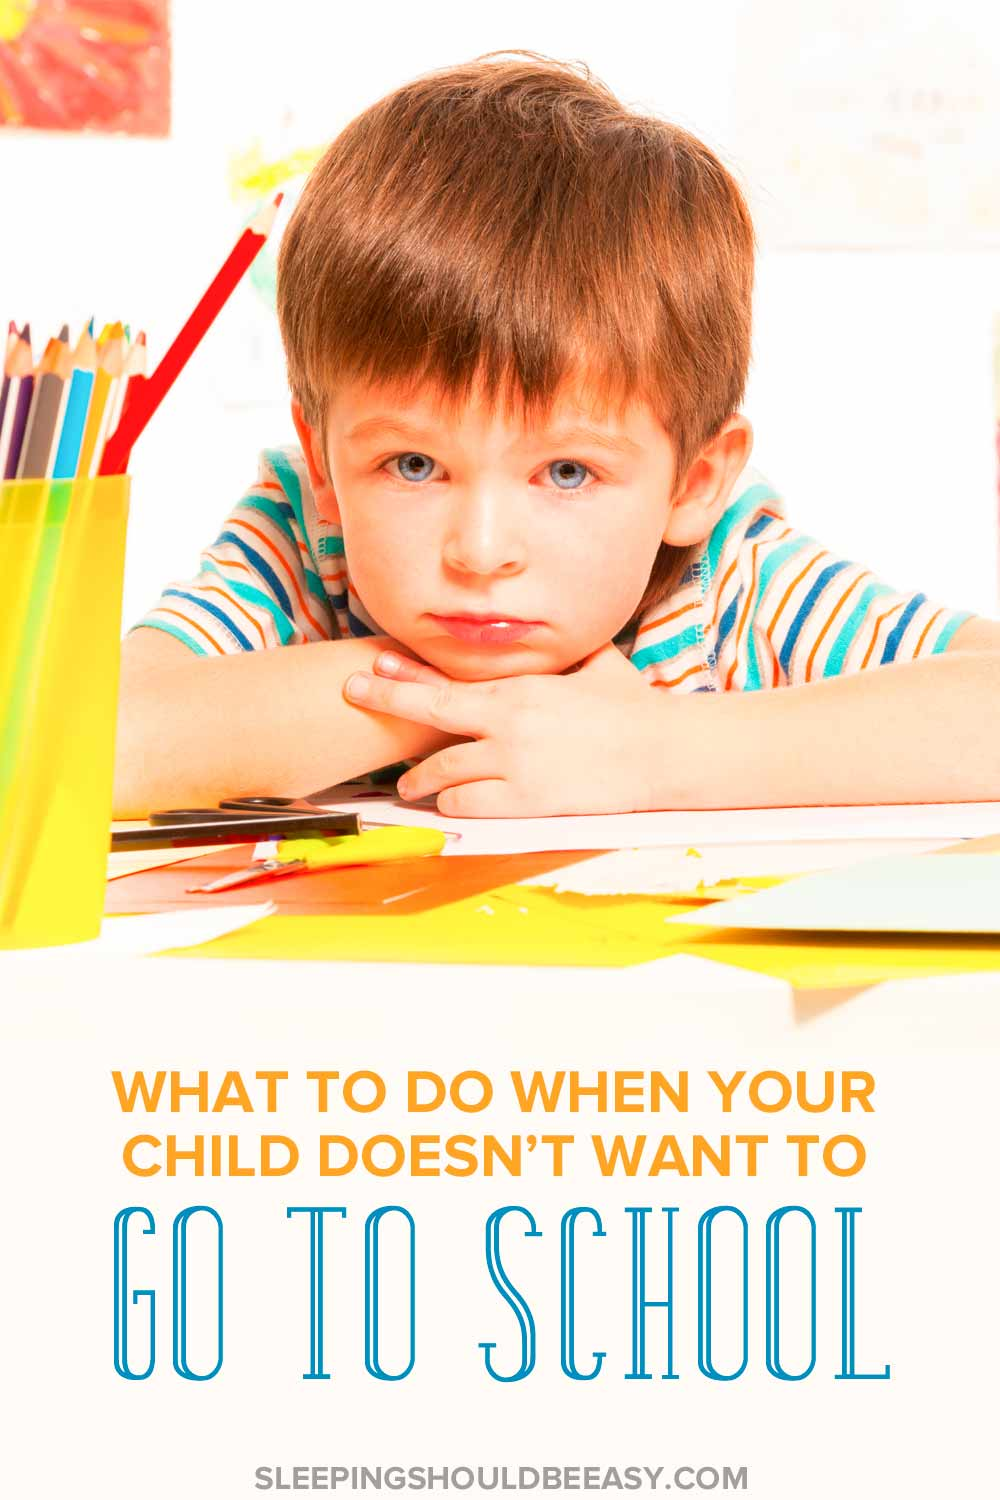 What to do when your child doesn't want to go to school anymore? Learn how to deal with your child's anxiety about school.